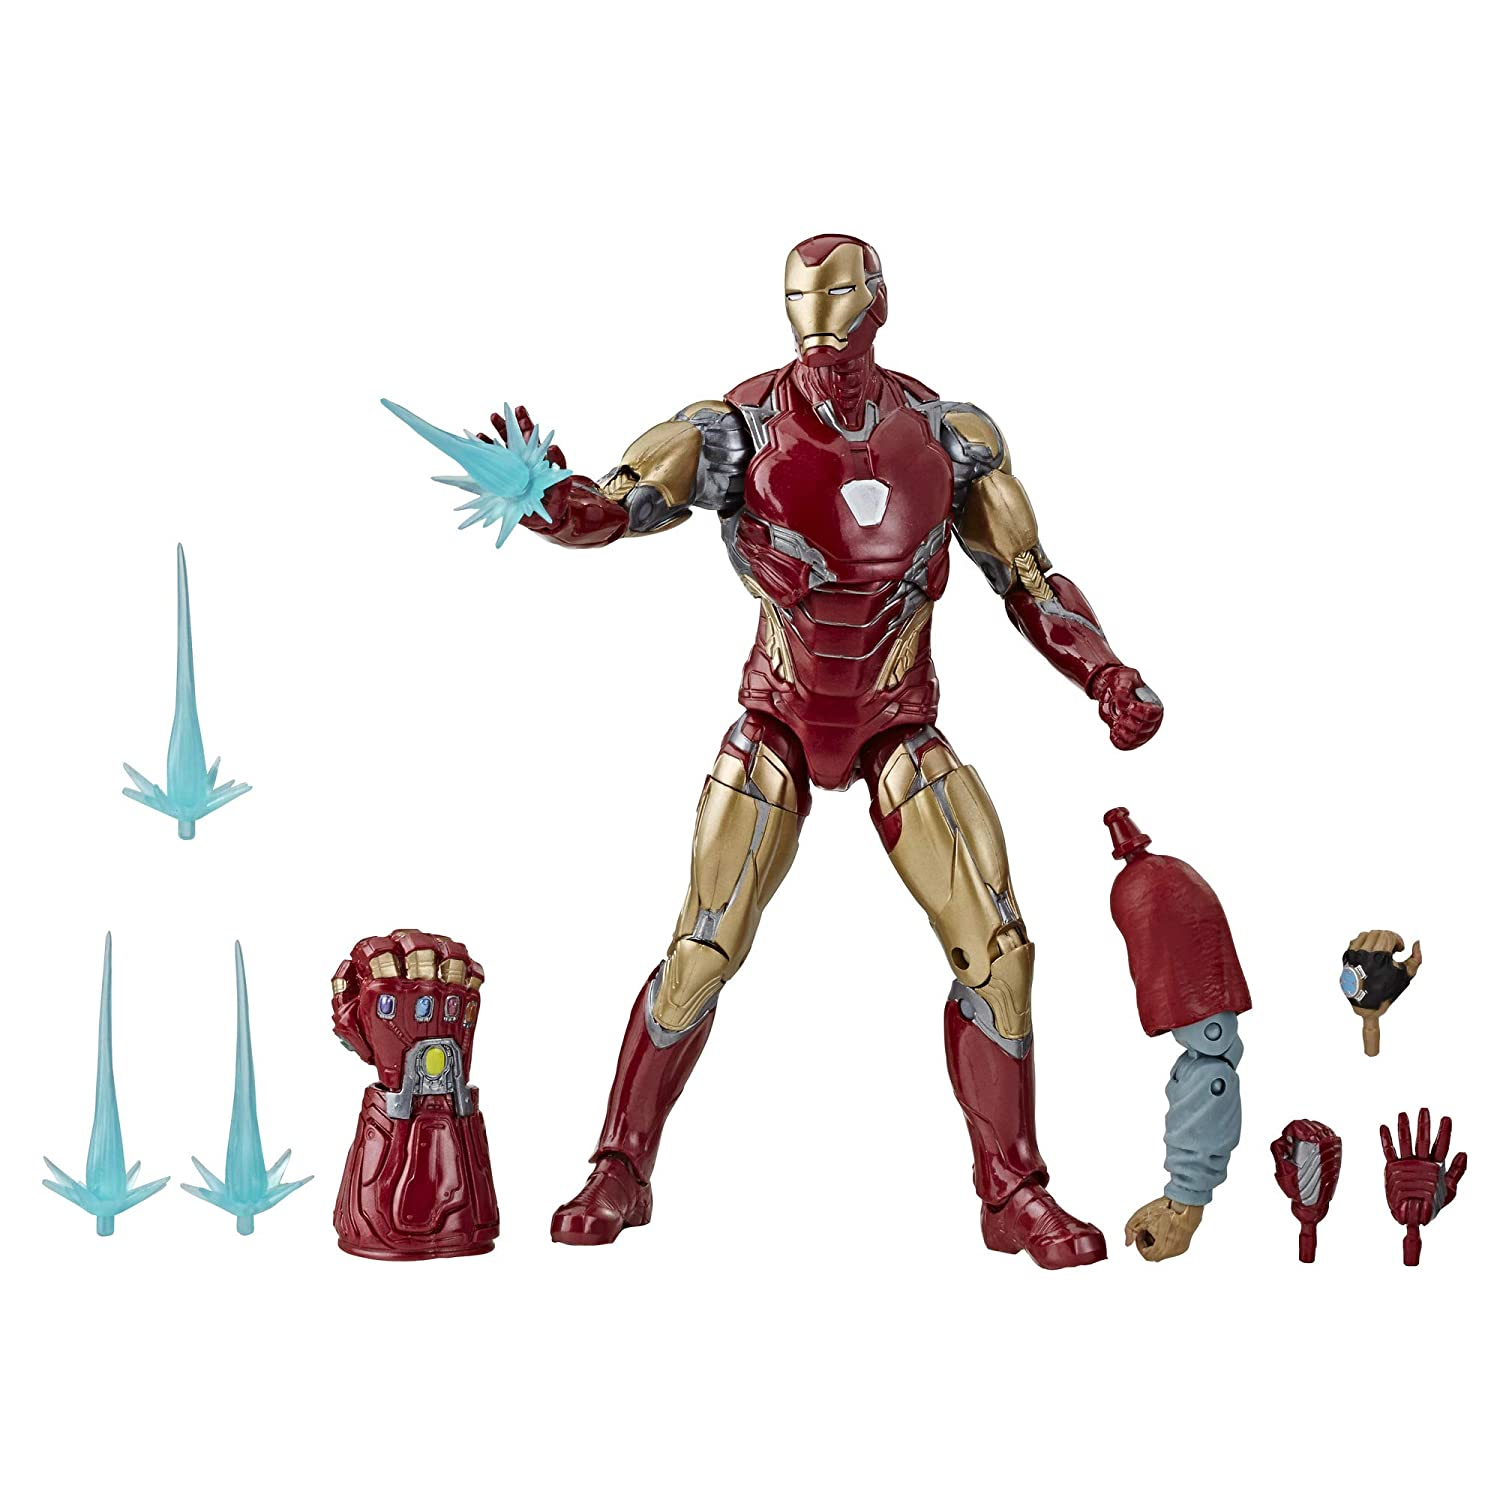 "Avengers Marvel Legends Series Endgame 6"" Collectible Action Figure Iron Man Mark Lxxxv Collection, Includes 7 Accessories"